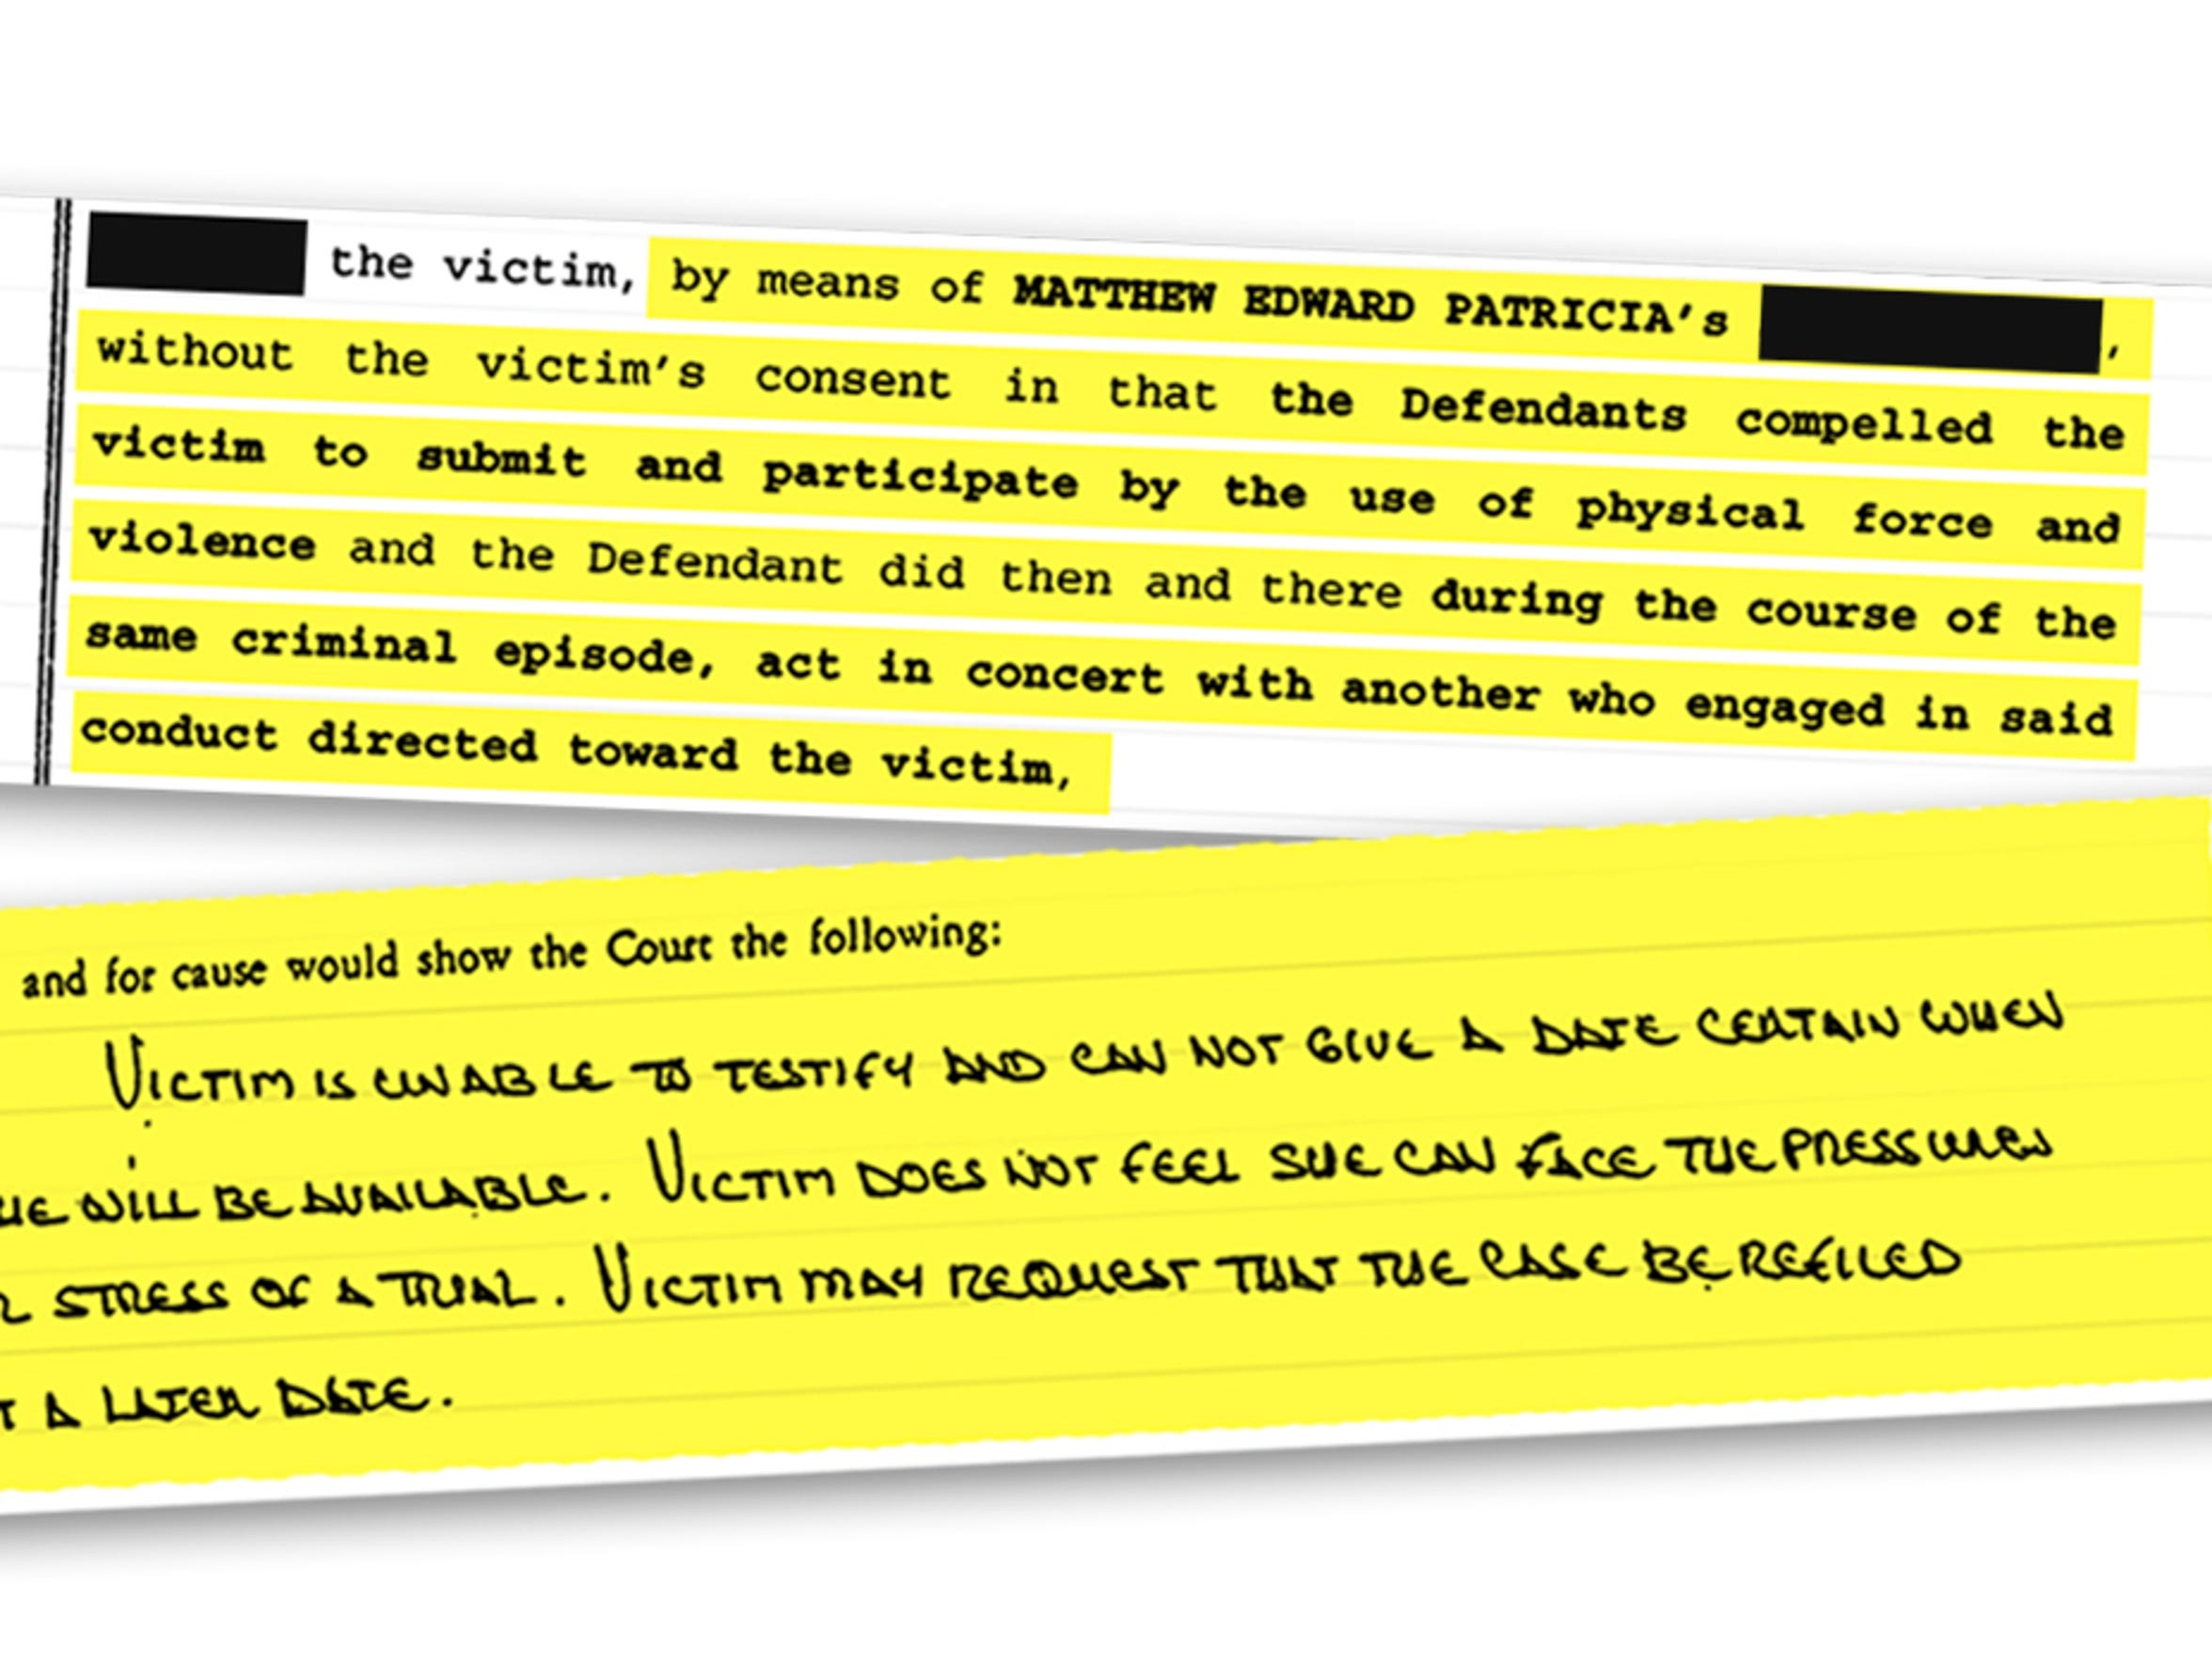 Court documents from Matt Patricia's case show his